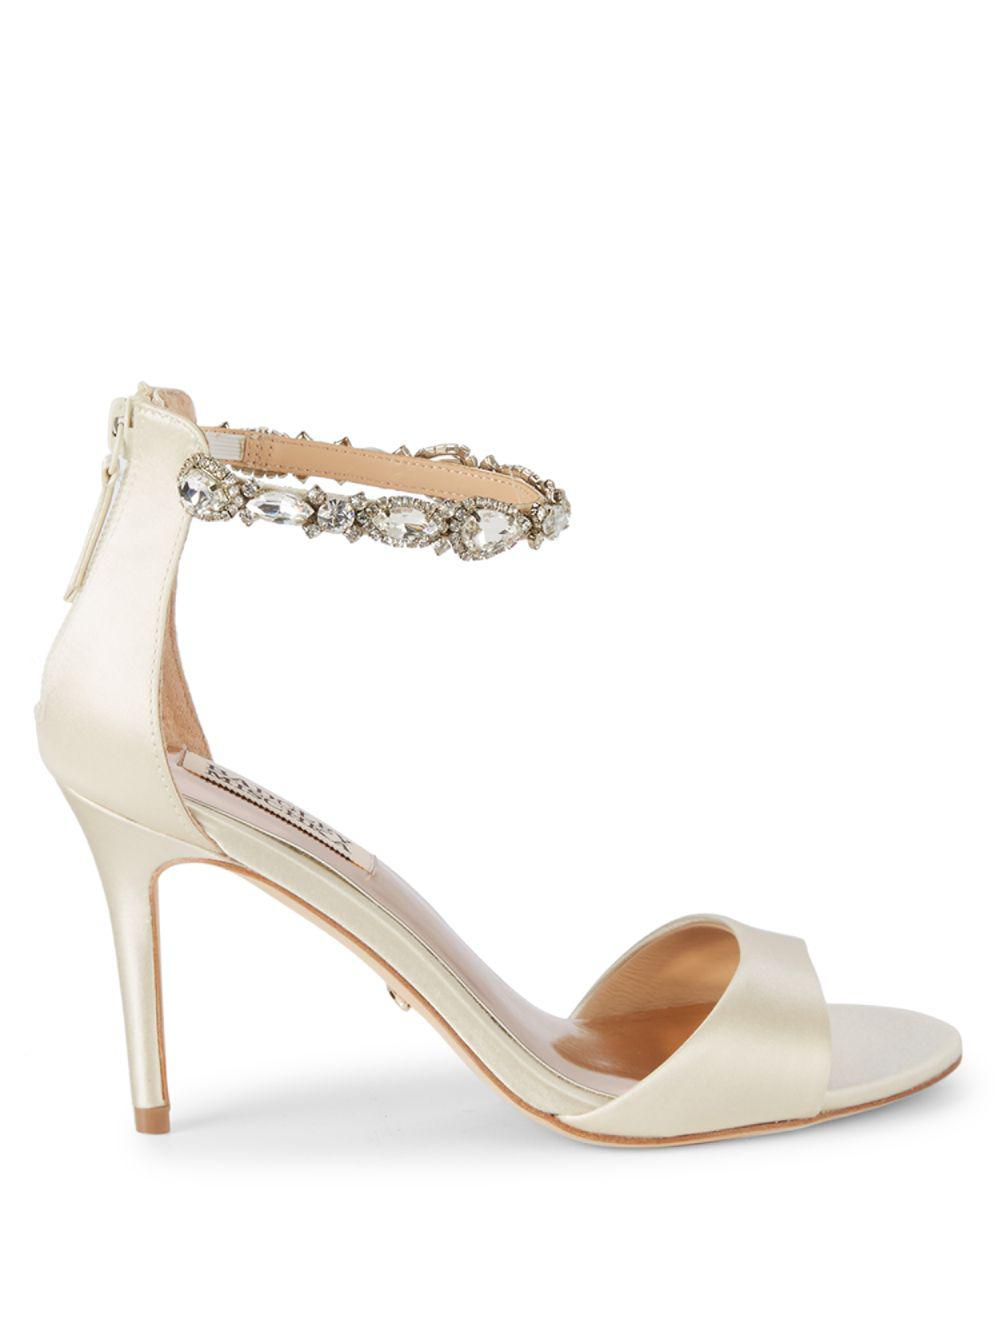 9b9c0120568 Lyst - Badgley Mischka Sindy Bejeweled D orsay Sandals in White